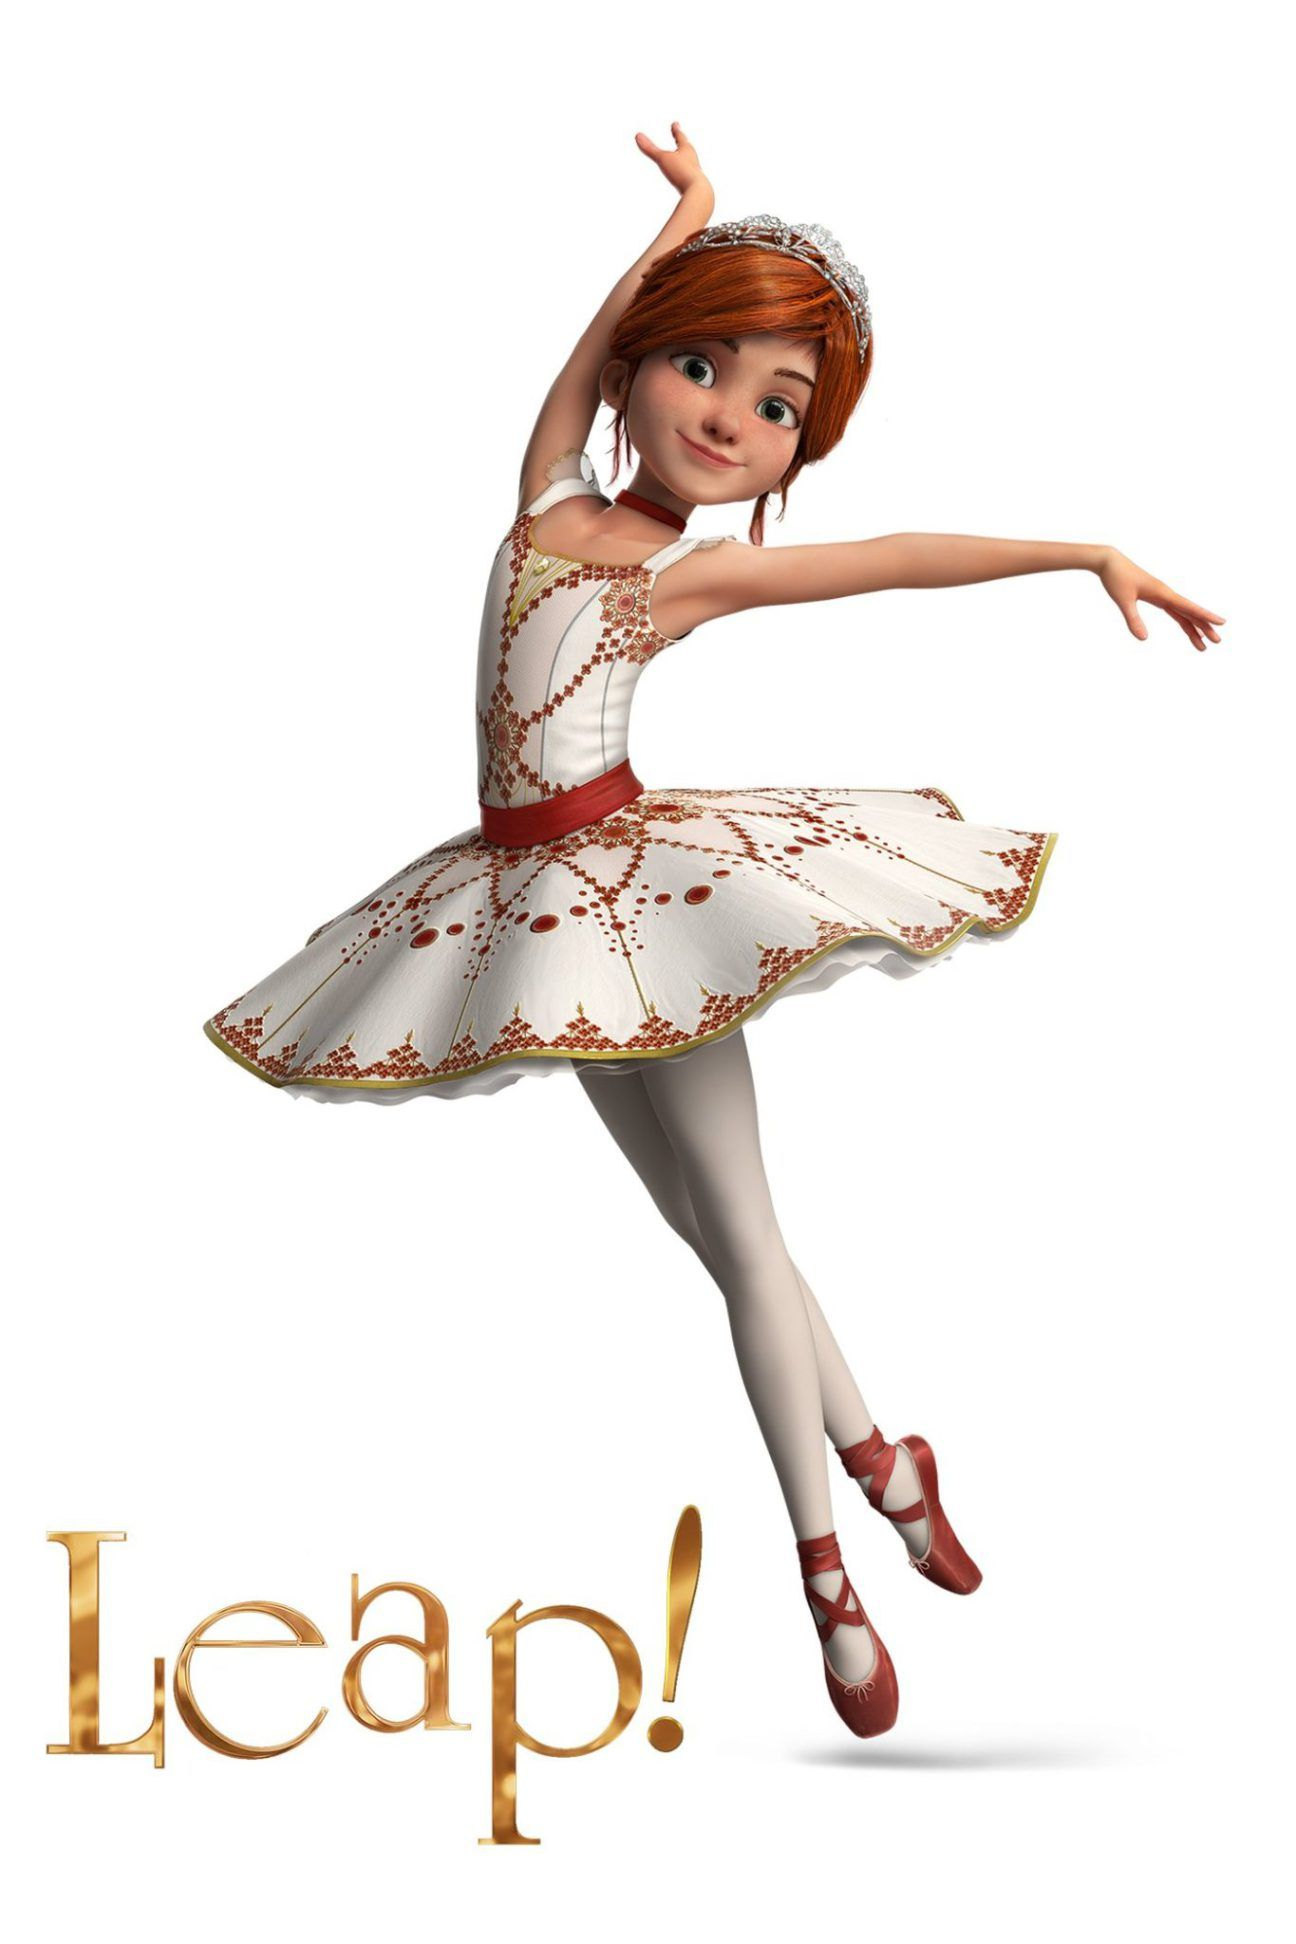 Leap (Ballerina) 2017: Interesting Facts You Didn't Know